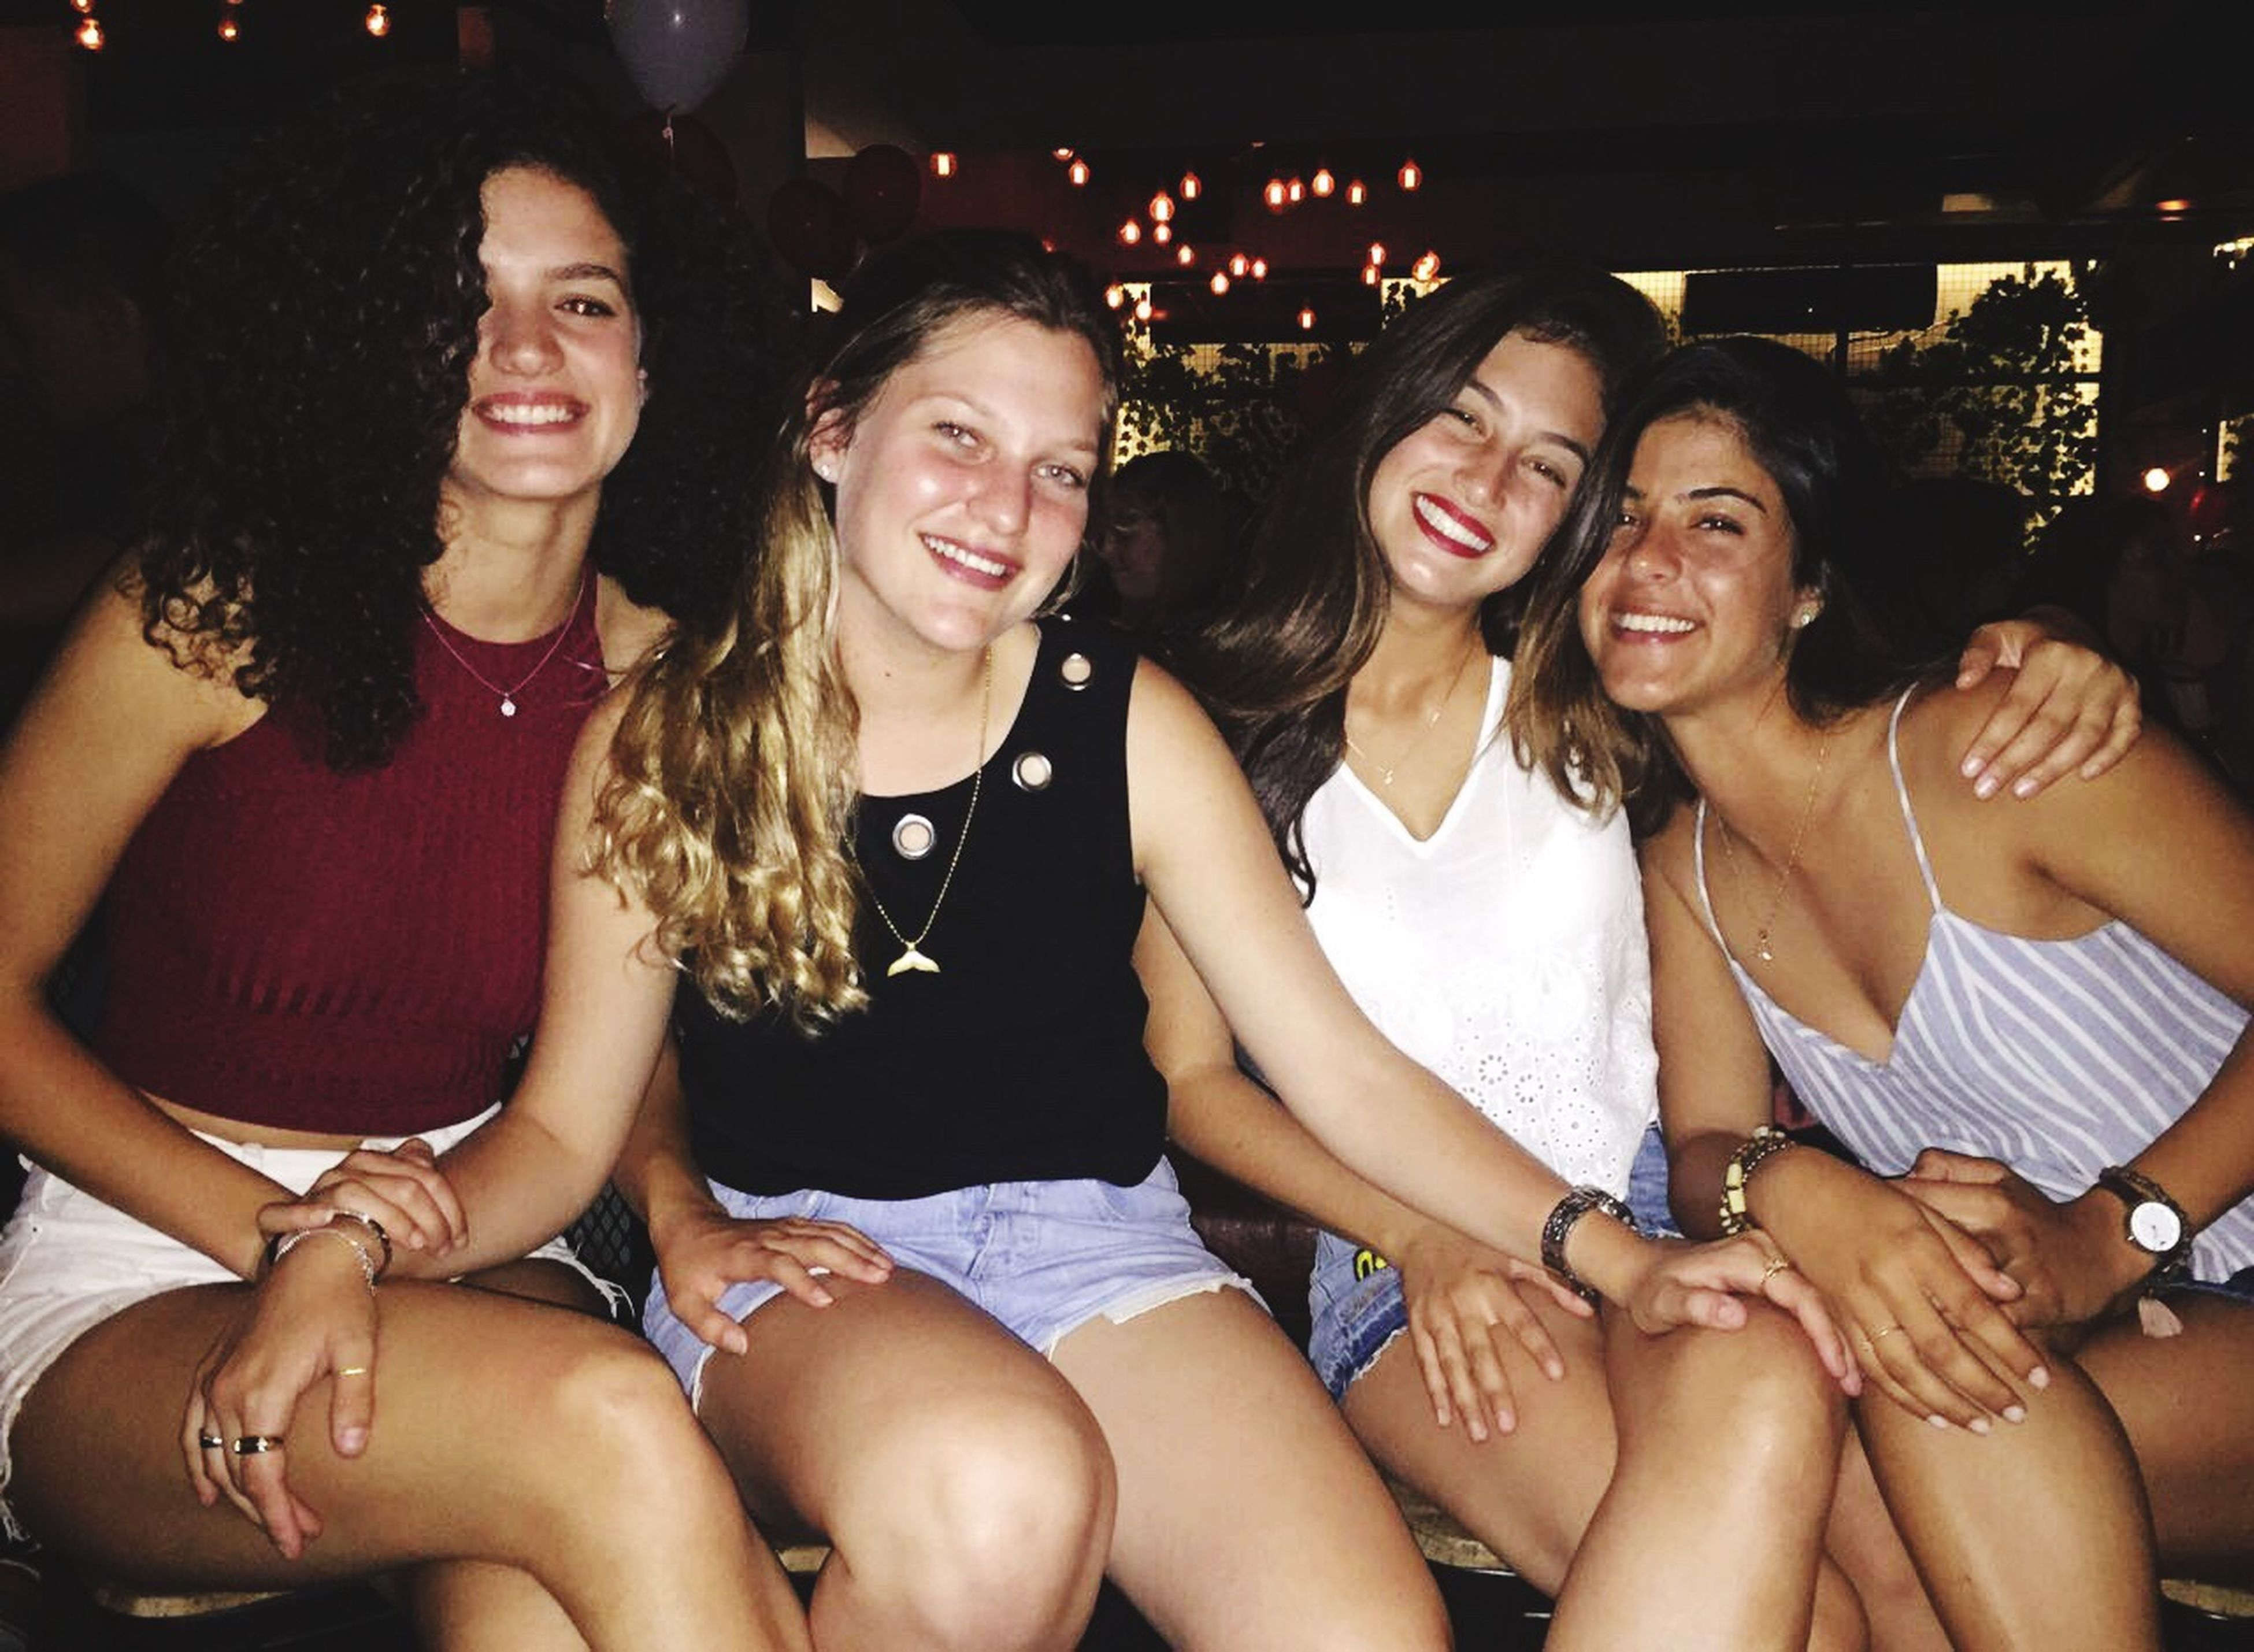 young women, leisure activity, young adult, friendship, smiling, lifestyles, togetherness, happiness, indoors, toothy smile, long hair, casual clothing, front view, person, looking at camera, enjoyment, beauty, friend, female, friends